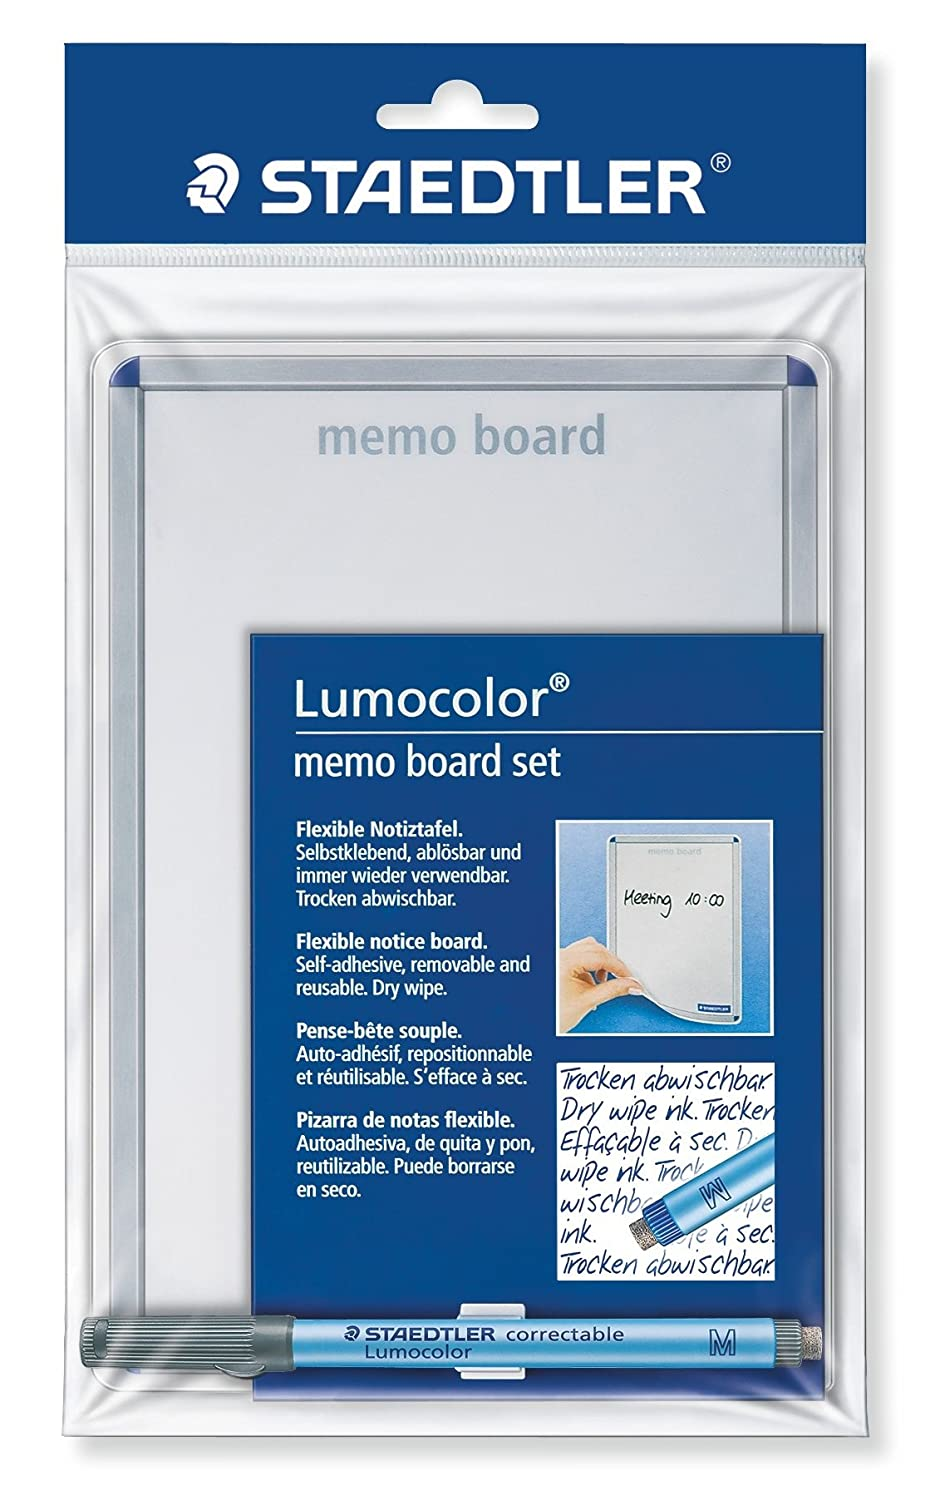 Staedtler Lumocolor 641 MB Dry-Wipe Memo Board Set with Lumocolor Correctable